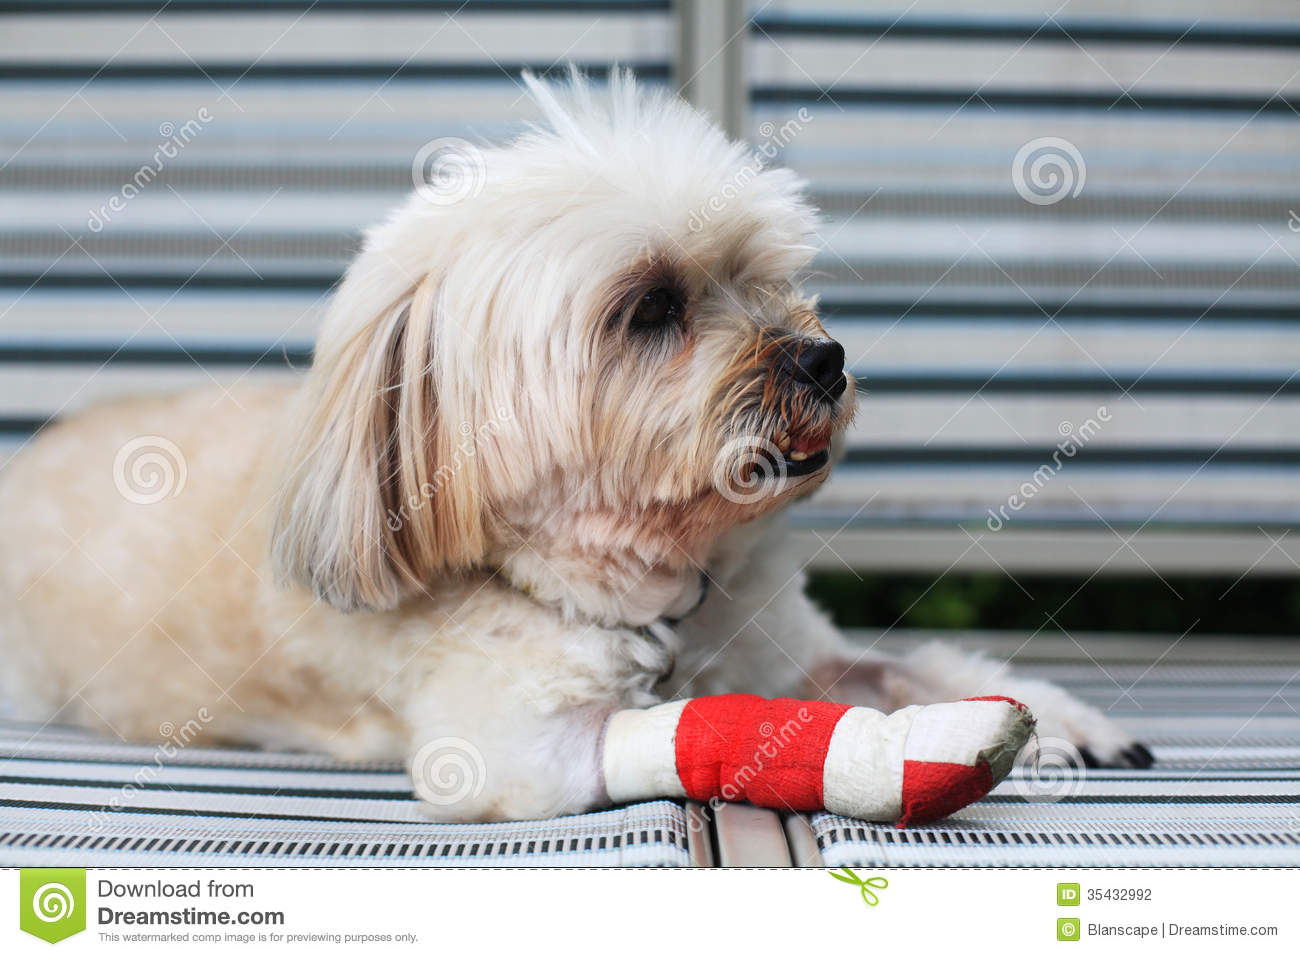 Injured Shih Tzu leg